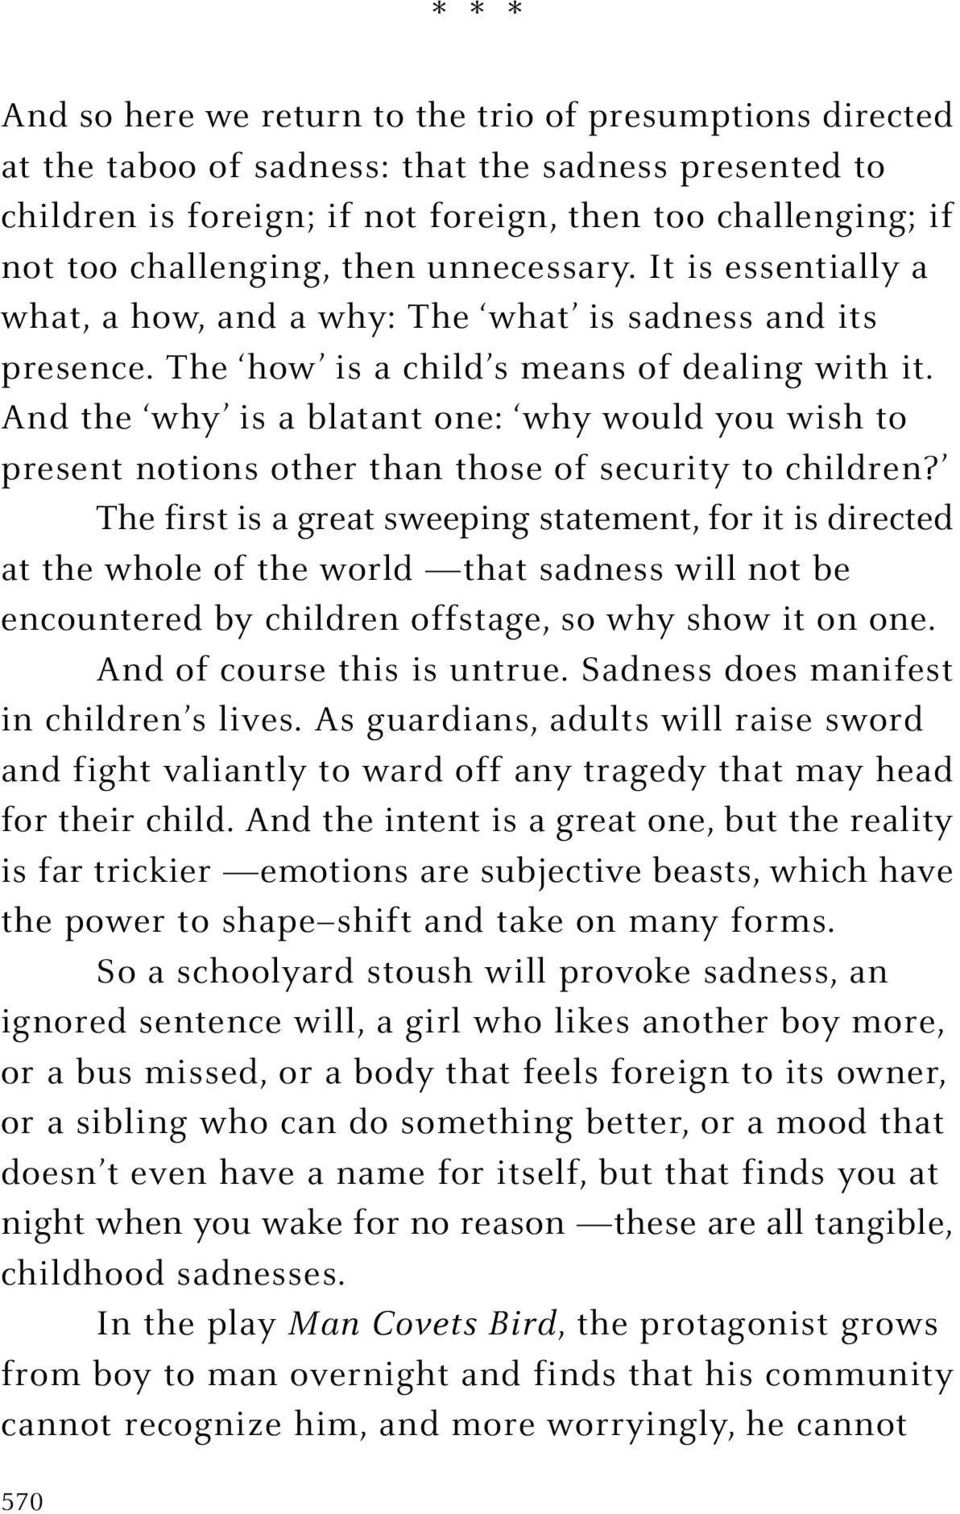 And the why is a blatant one: why would you wish to present notions other than those of security to children?